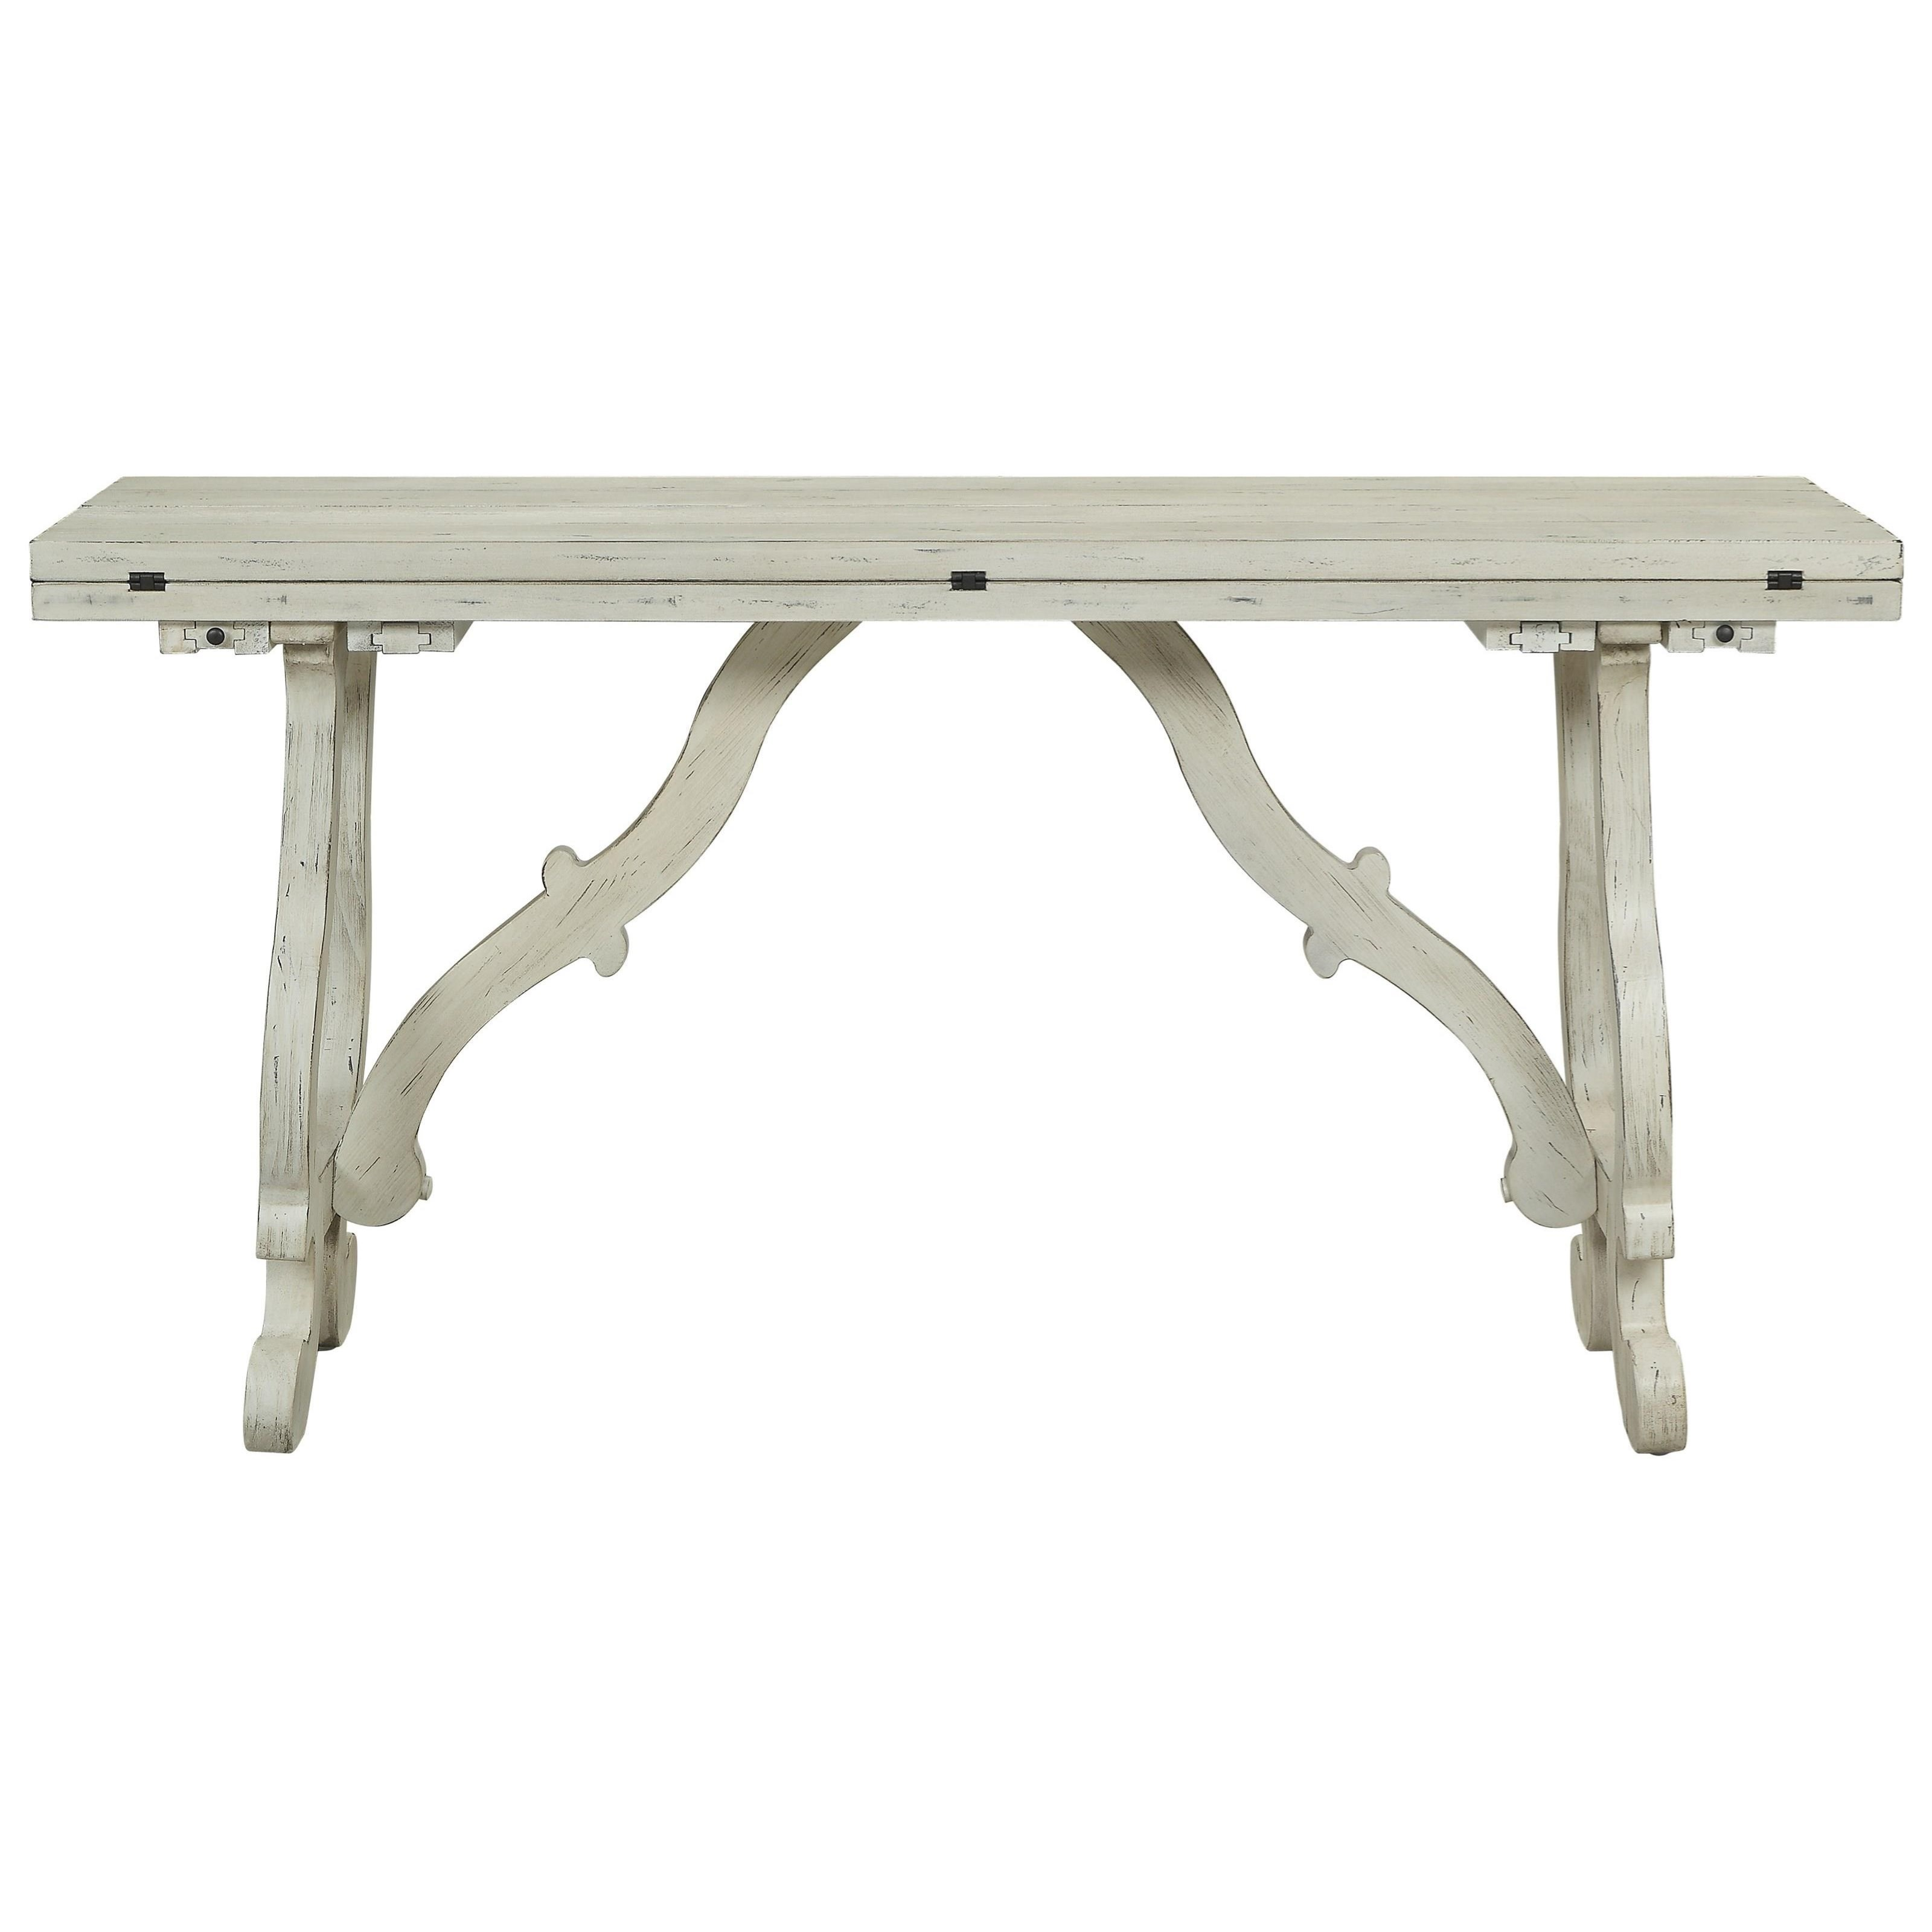 Shown In: Coast To Coast Imports Orchard Park Orchard Park Fold Out Console